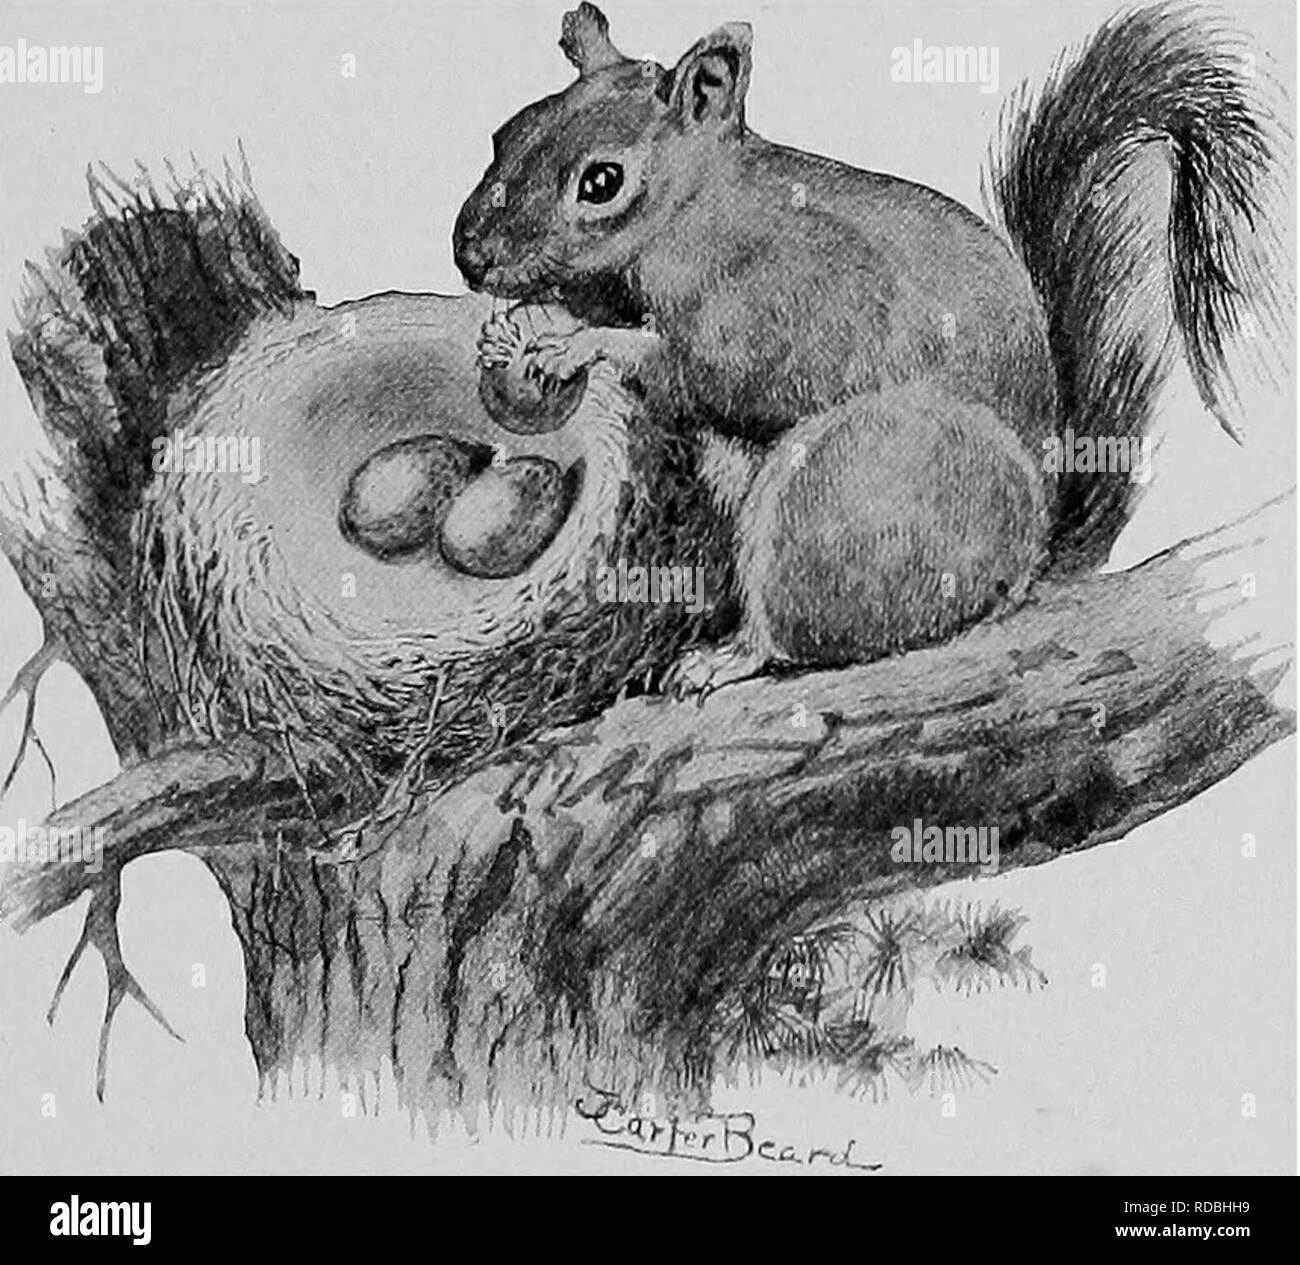 Red Squirrels Black and White Stock Photos & Images - Alamy